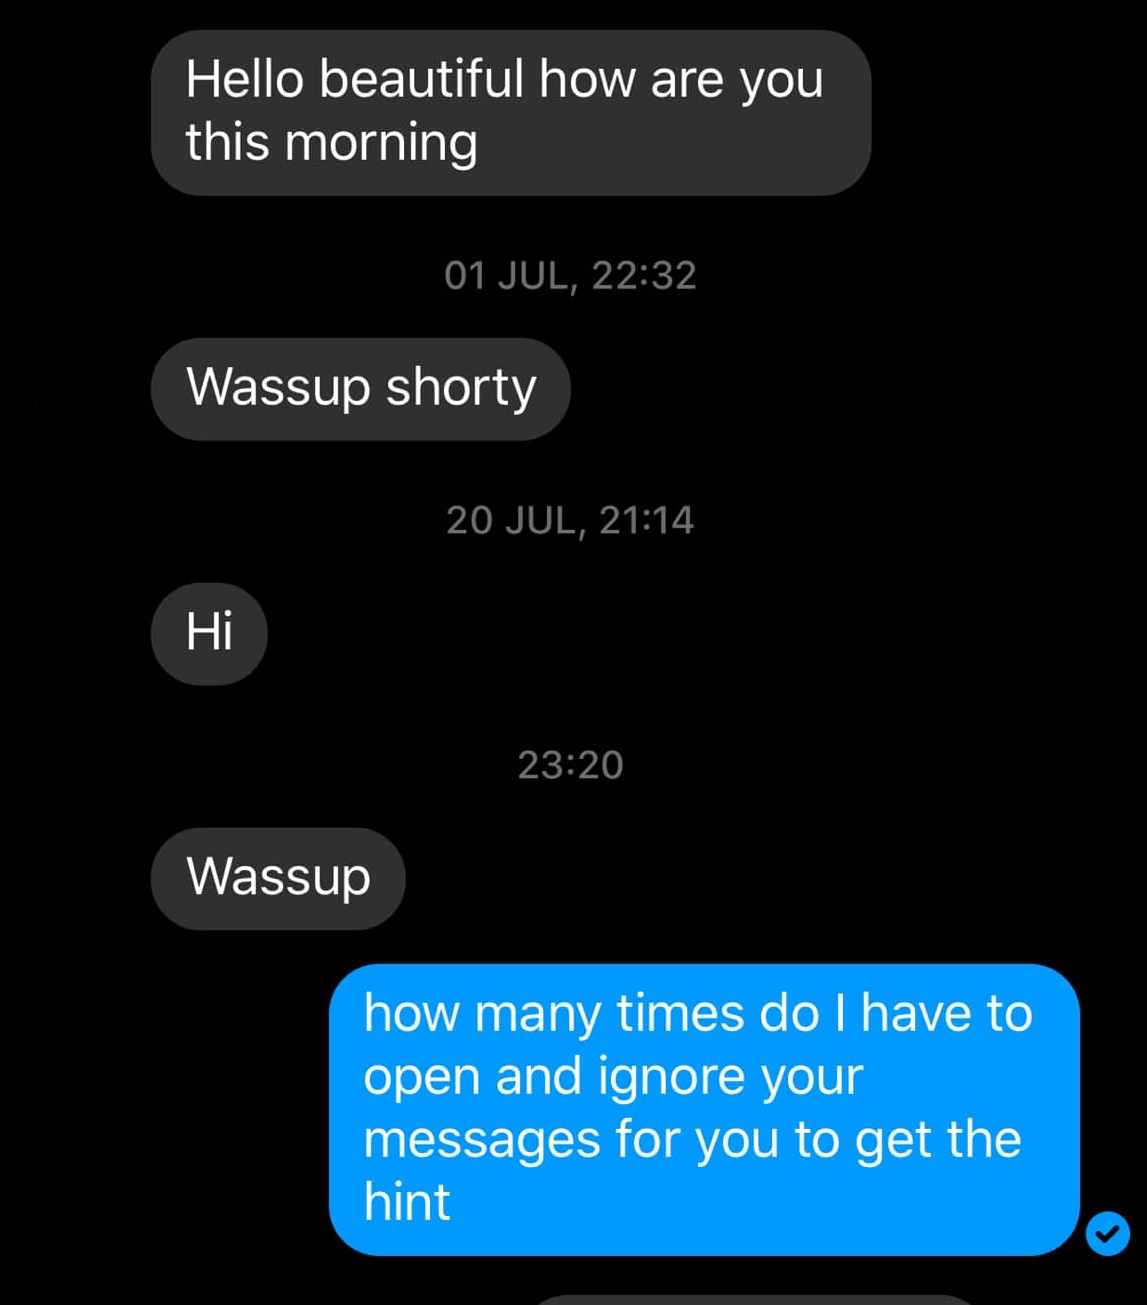 How many times do I have to ignore your messages?